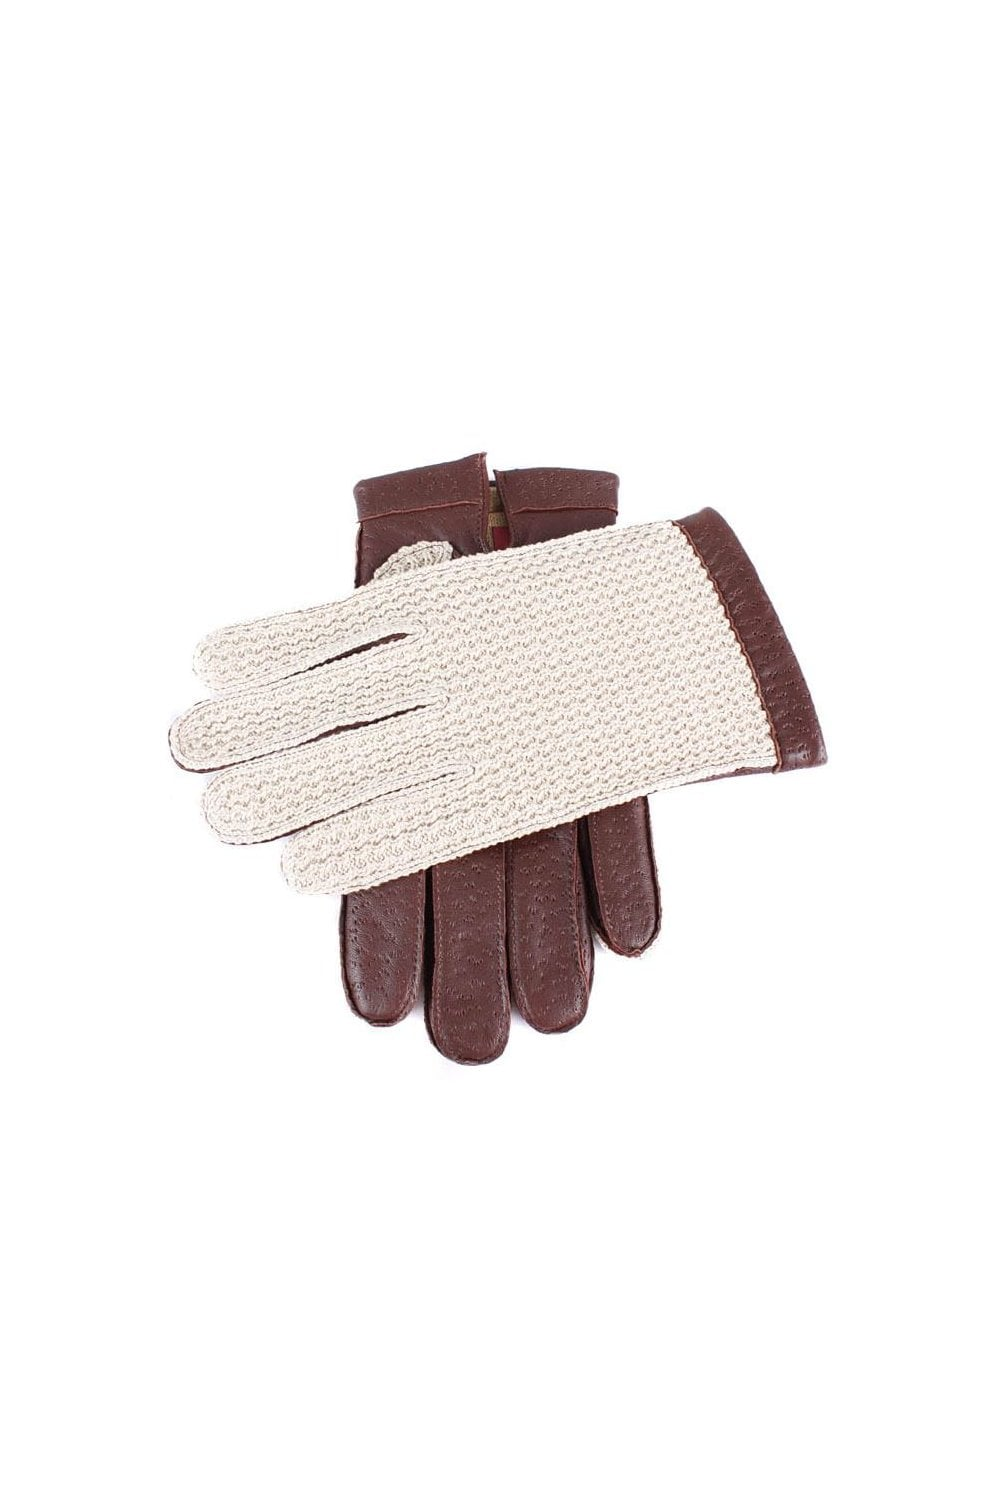 d6d62999551 Dents Mens Cotswold Warm Lined Crochet Back Driving Gloves ...